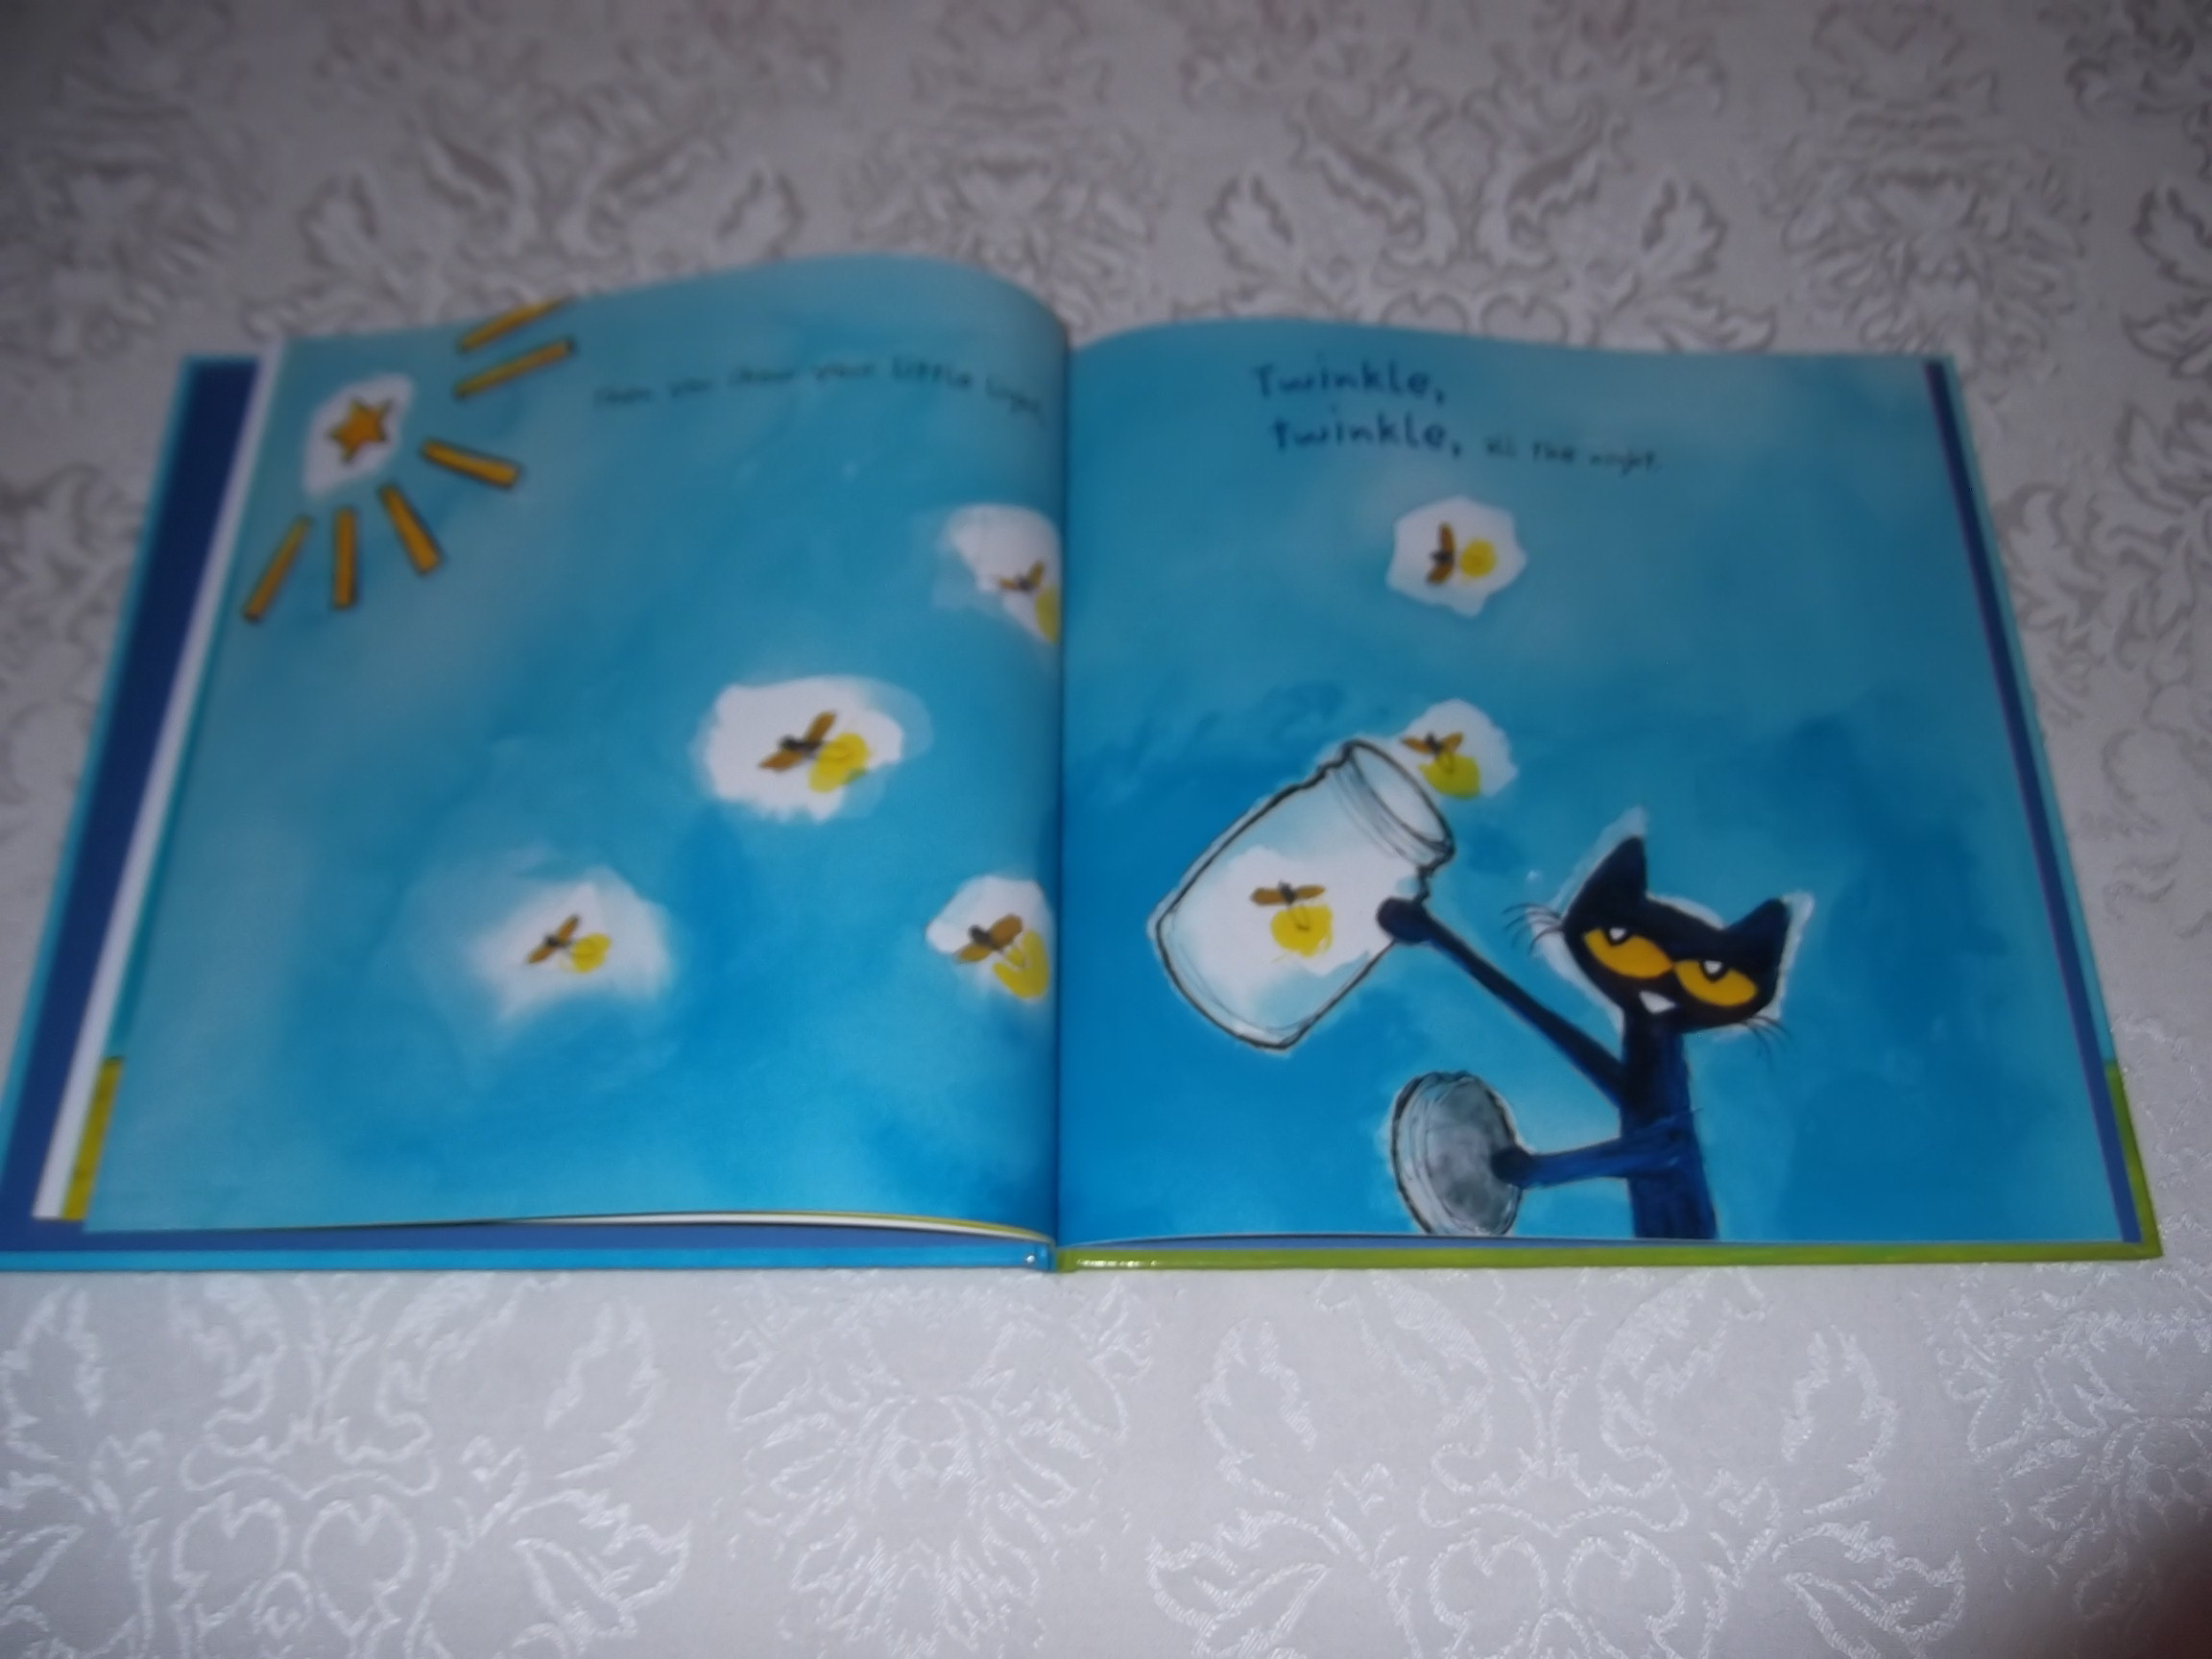 Image 11 of Pete the Cat Twinkle, Twinkle, Little Star James Dean Brand New HC